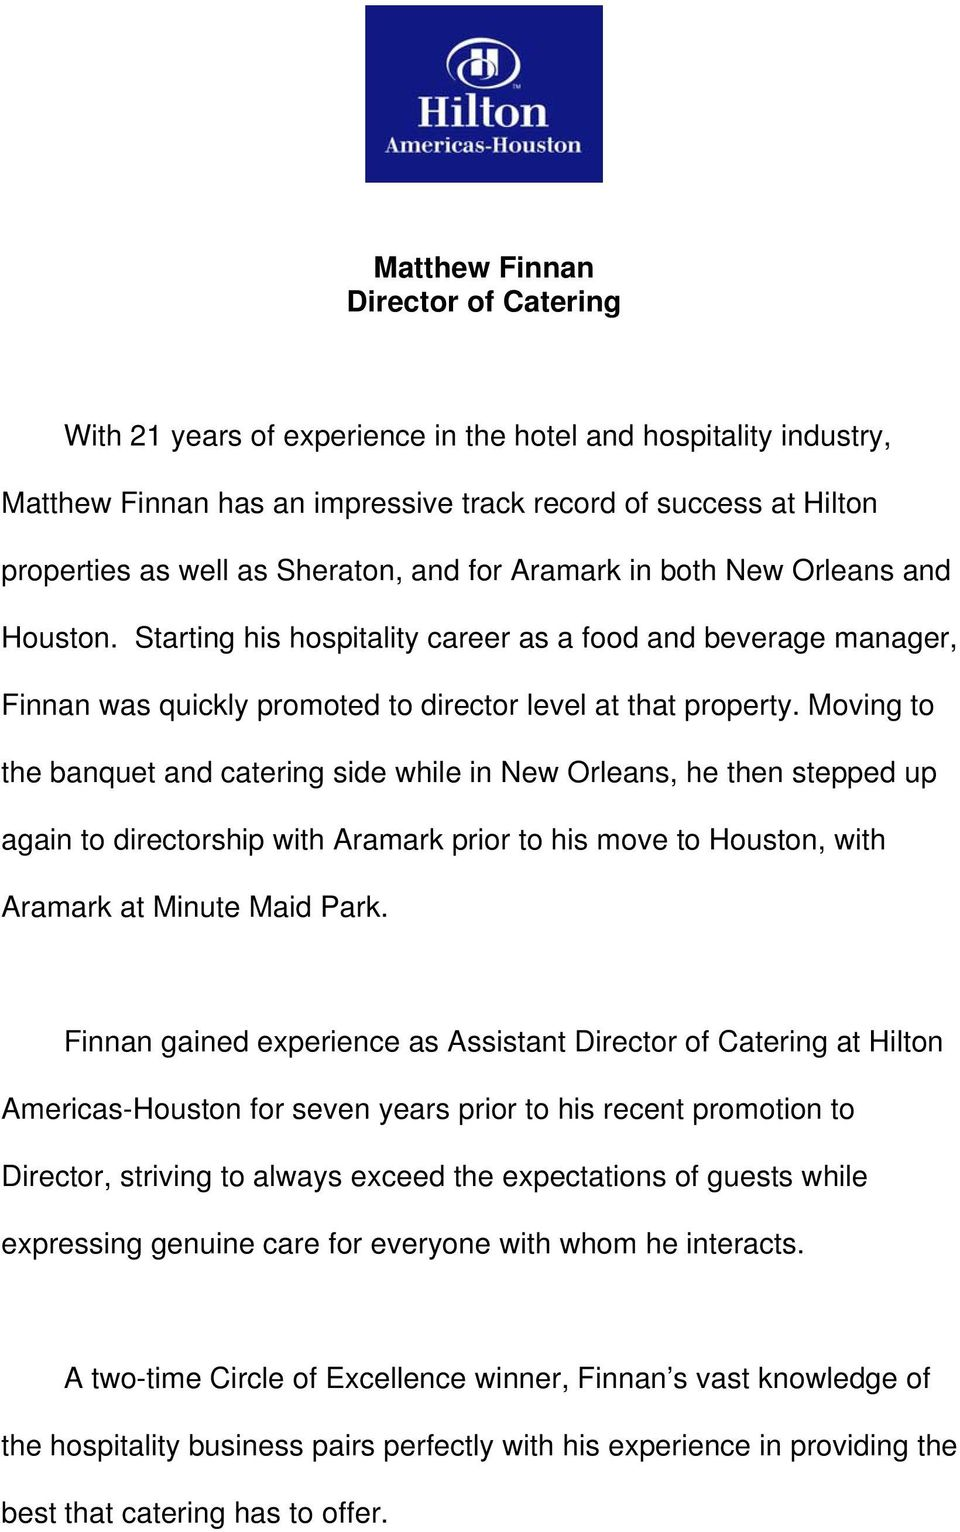 Moving to the banquet and catering side while in New Orleans, he then stepped up again to directorship with Aramark prior to his move to Houston, with Aramark at Minute Maid Park.